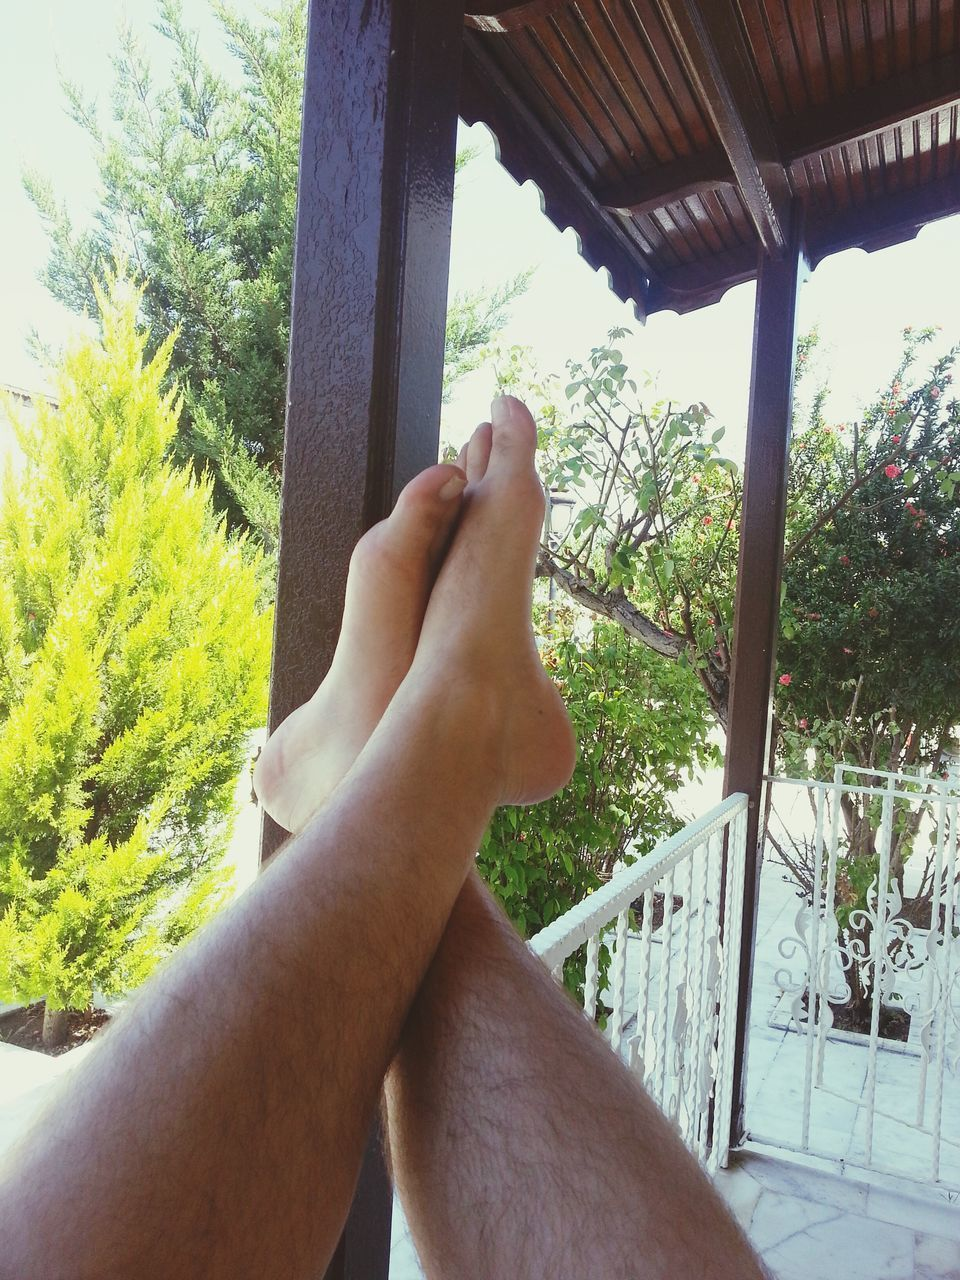 tree, person, part of, personal perspective, lifestyles, cropped, barefoot, low section, leisure activity, relaxation, sunlight, indoors, legs crossed at ankle, day, human finger